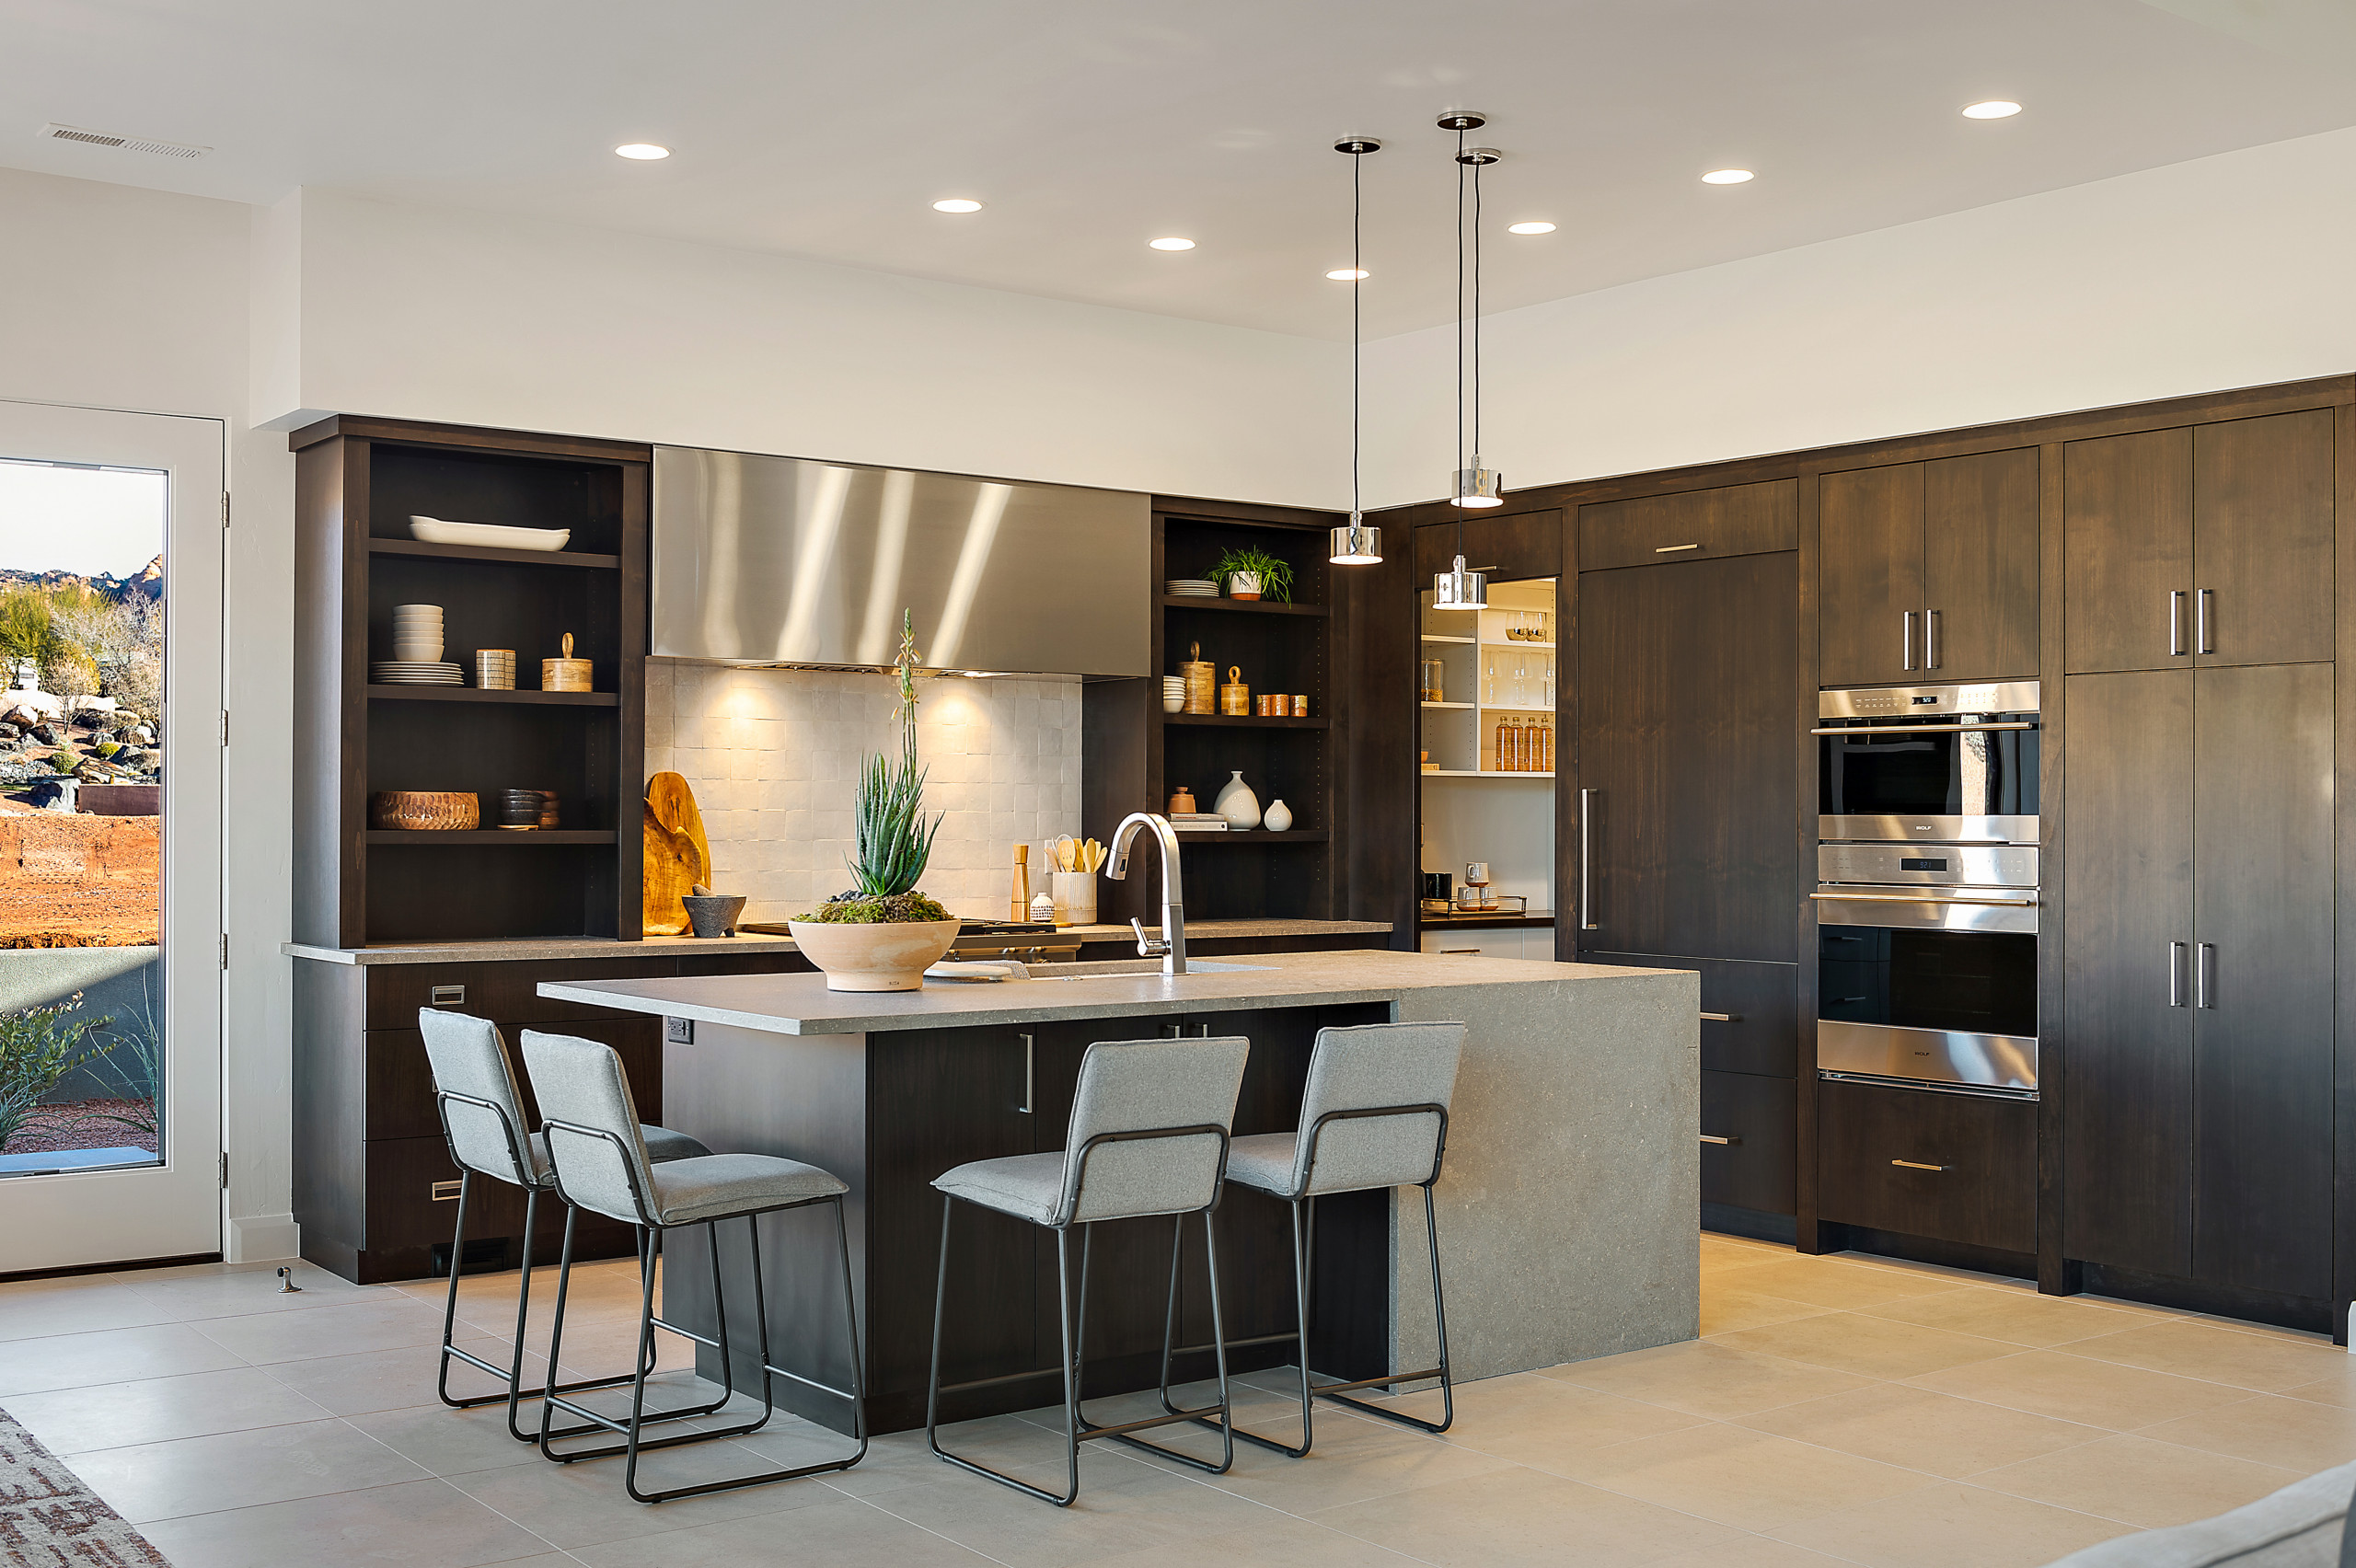 75 Beautiful Southwestern Kitchen Pictures Ideas July 2021 Houzz